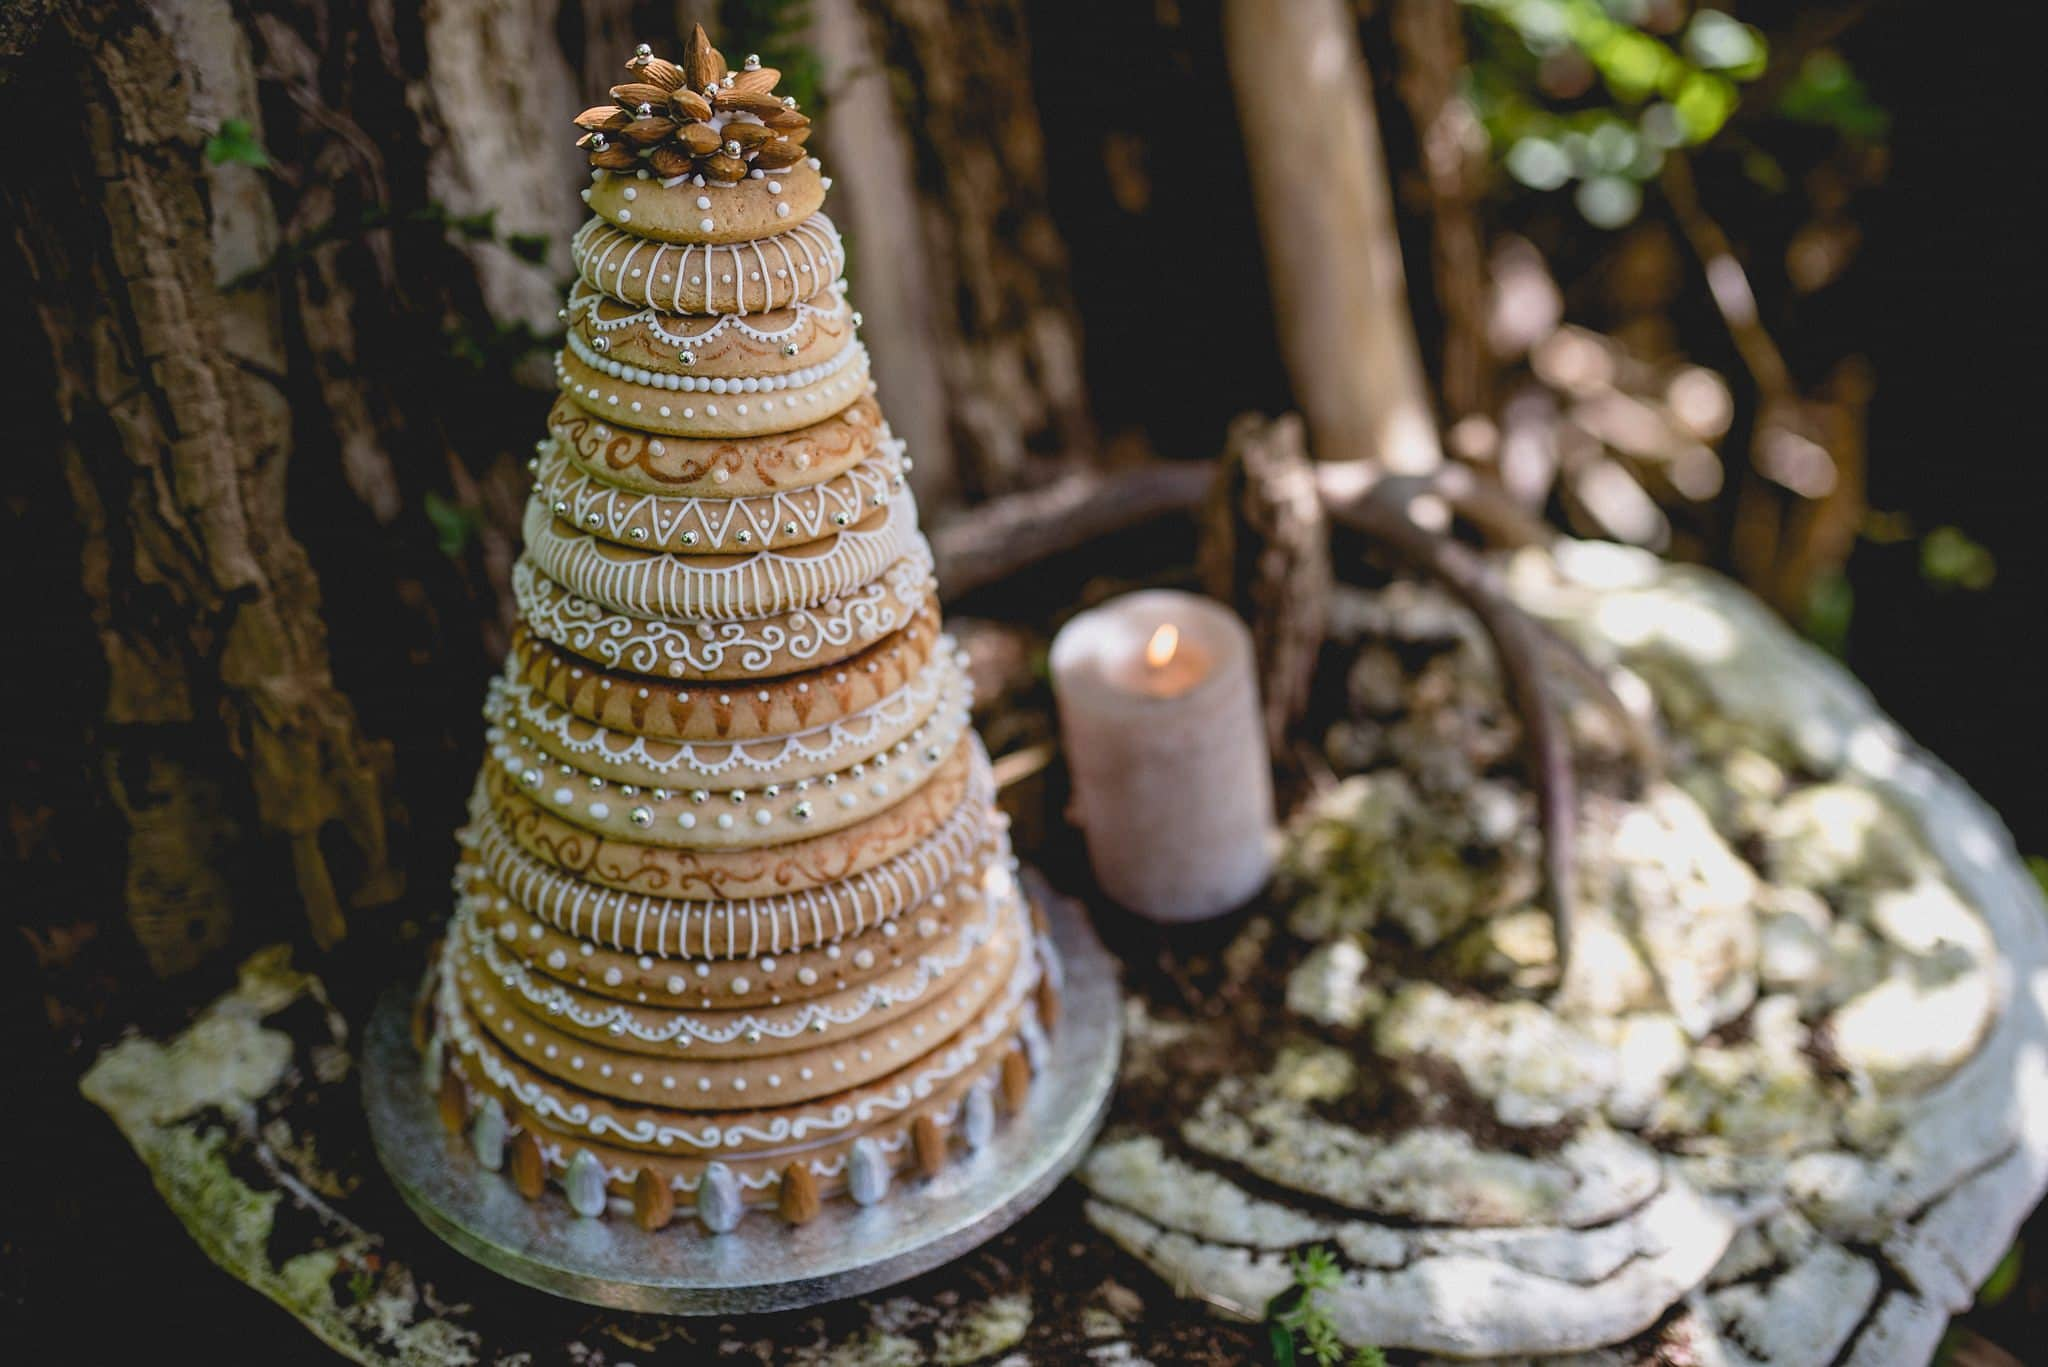 Iced kransekake on treestump